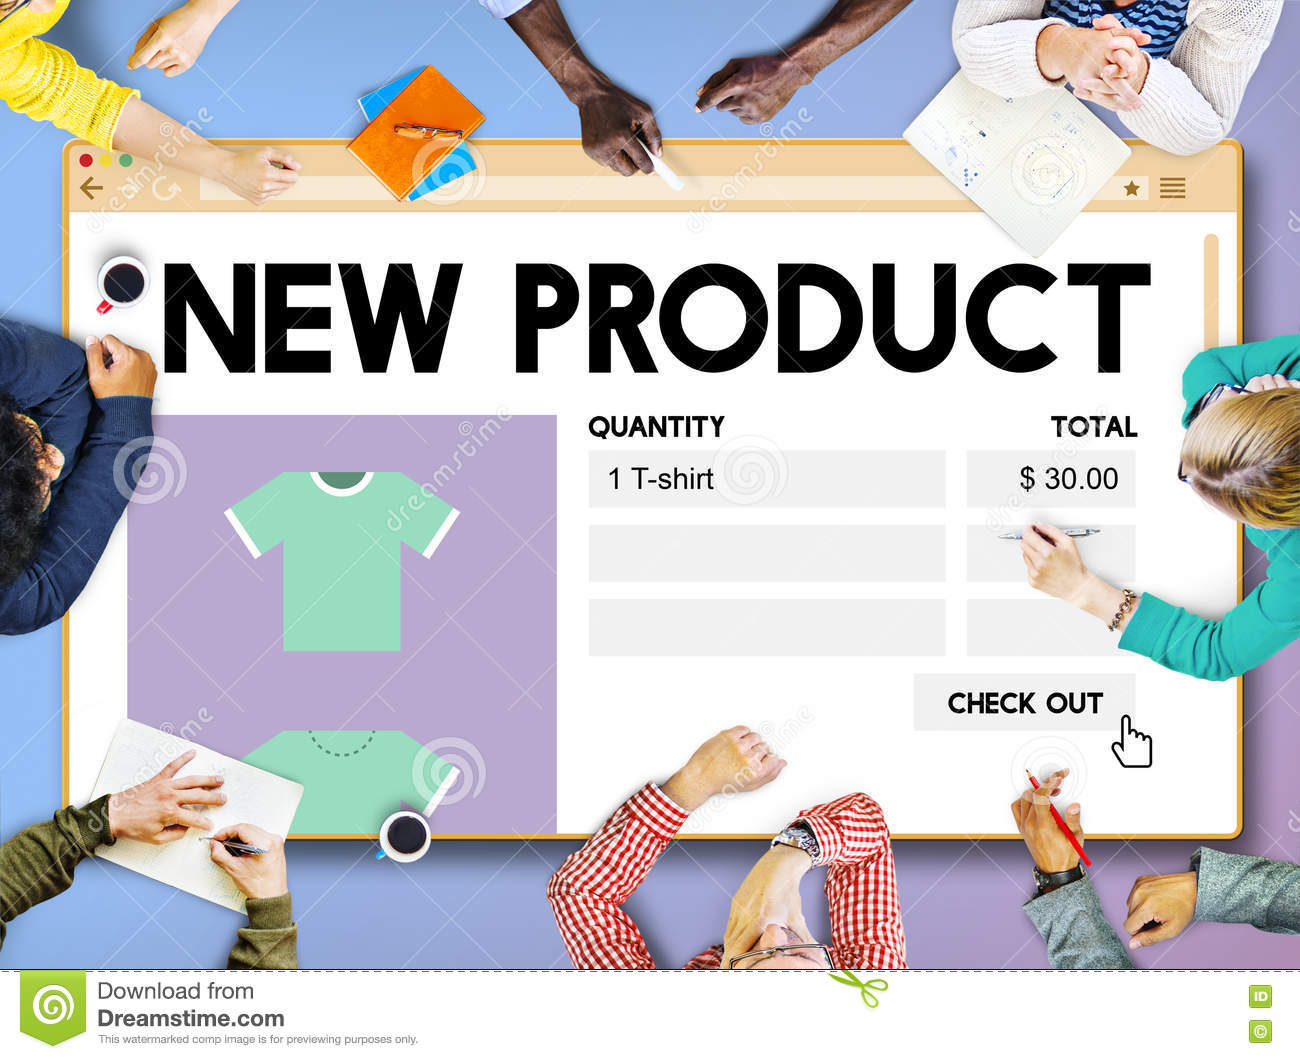 Steps to Marketing New Products